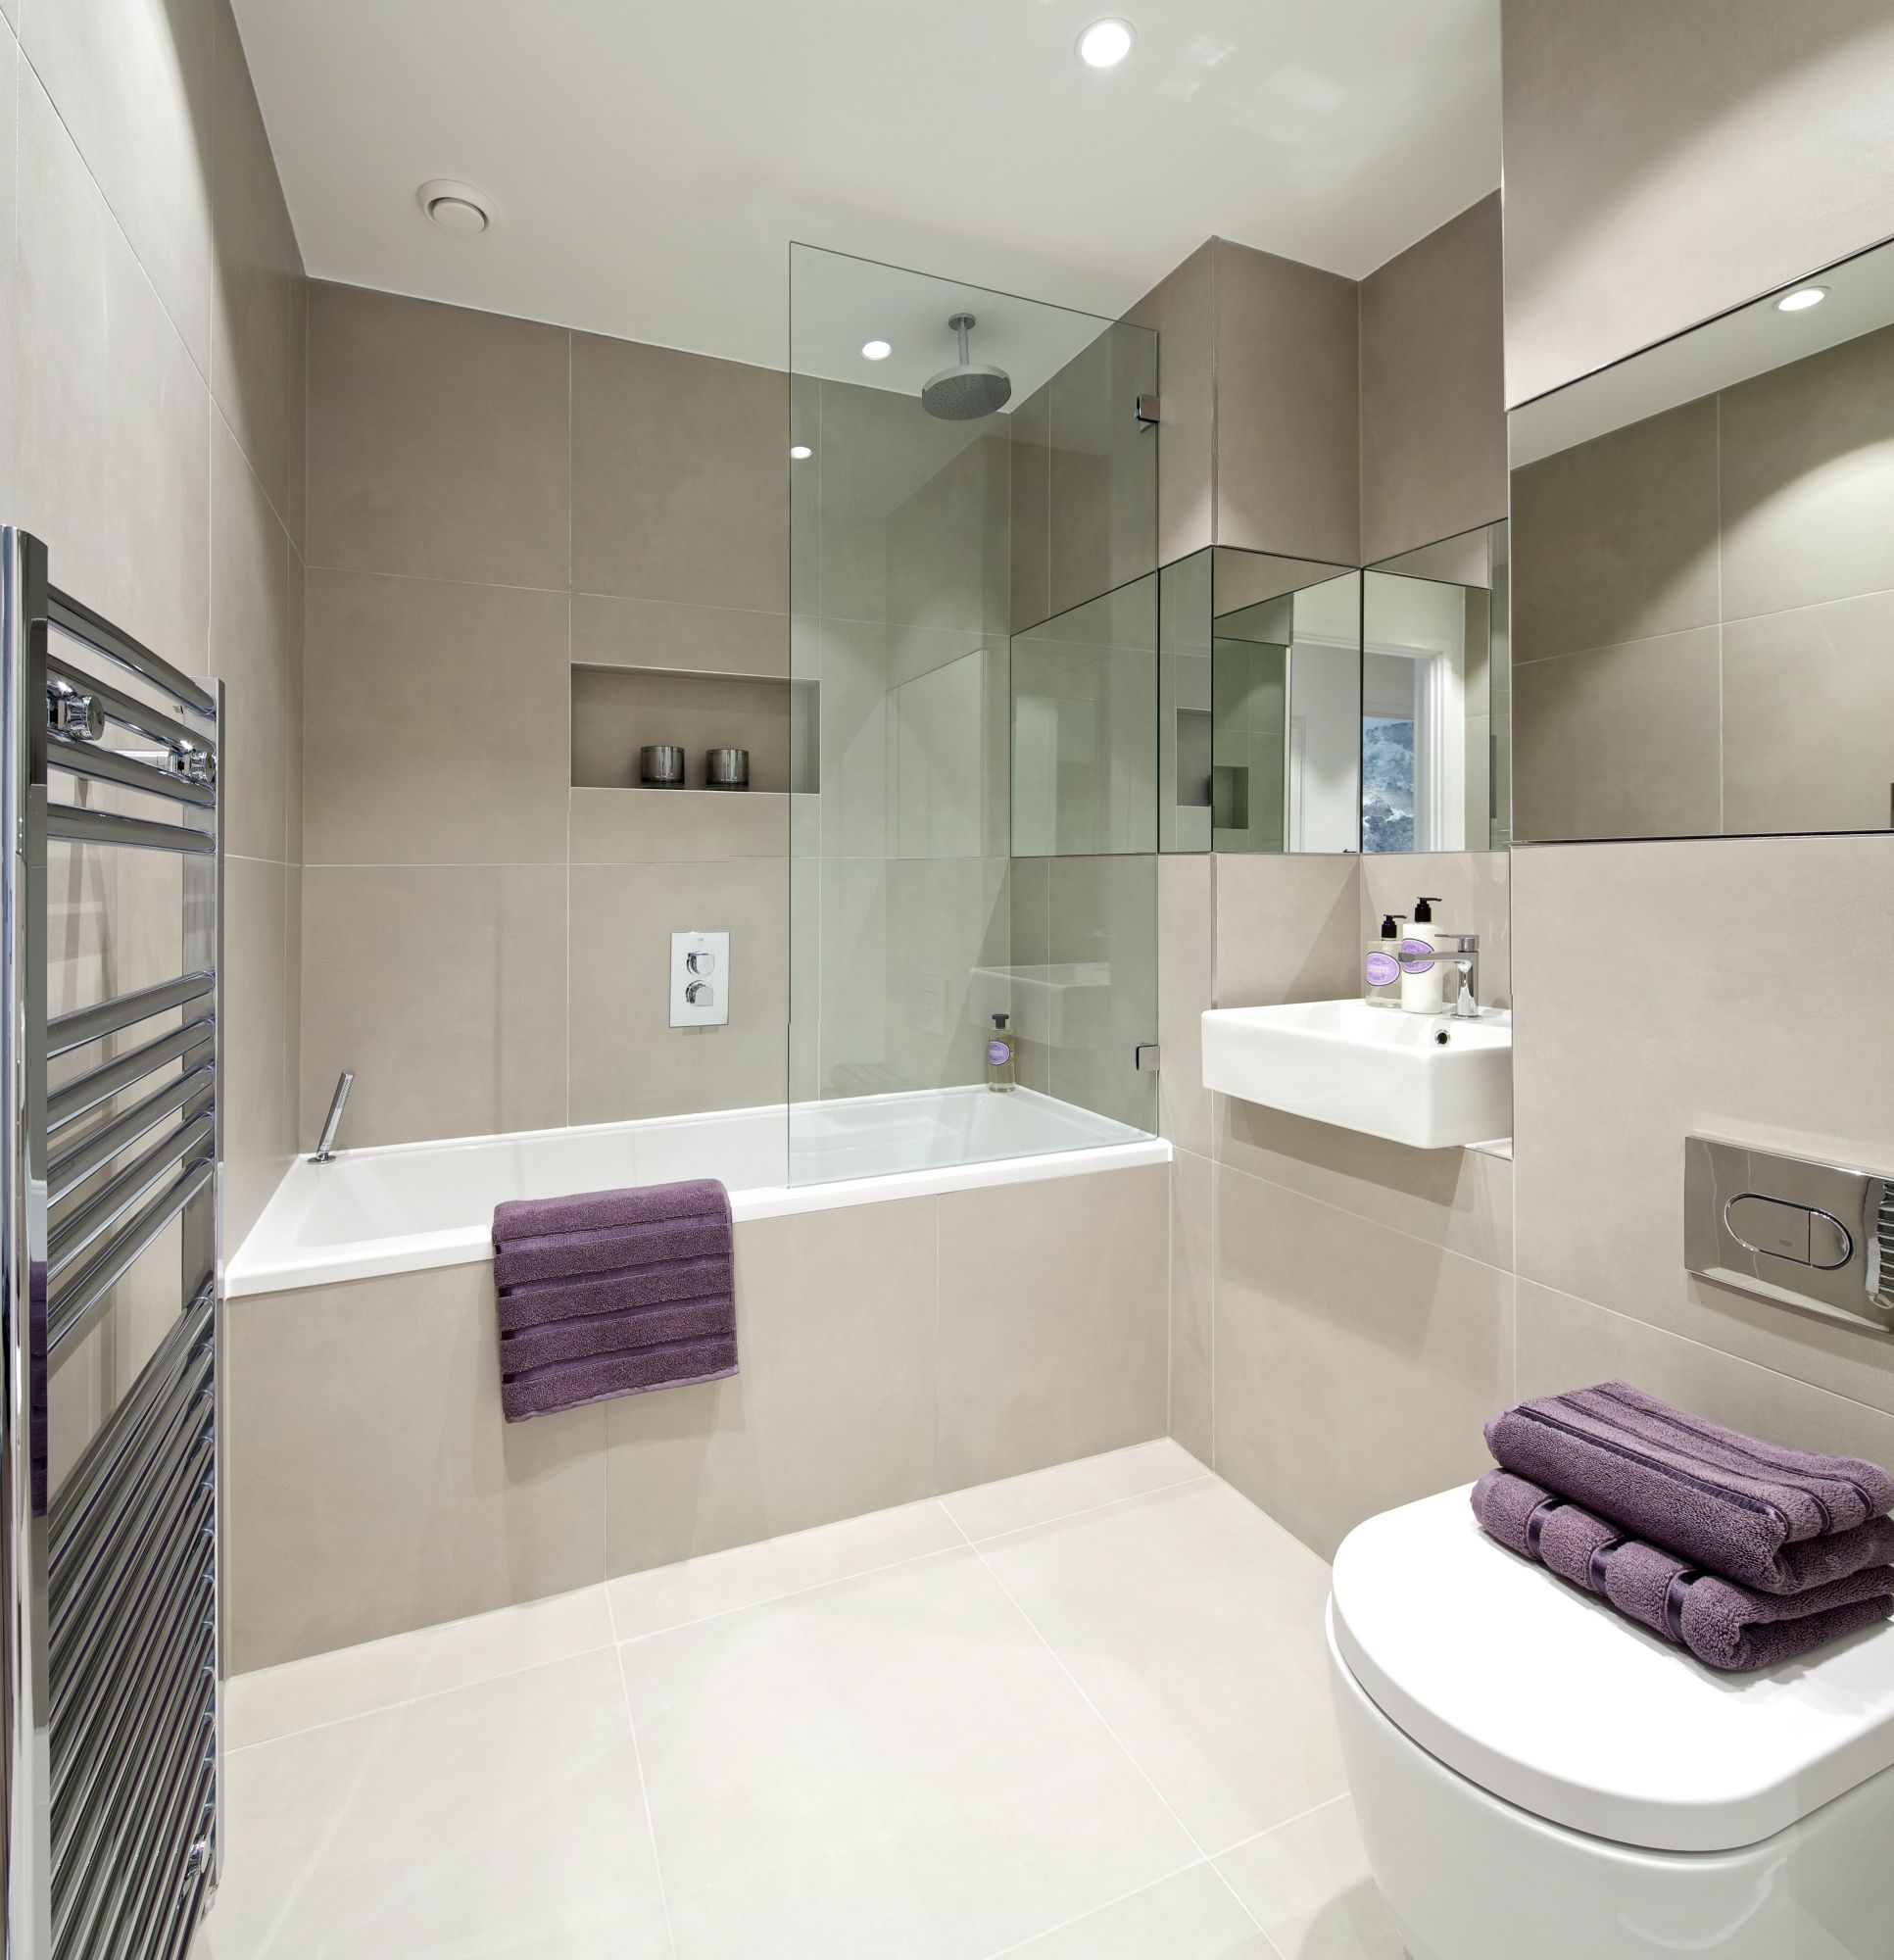 Stunning home interiors bathroom another stunning show for Apartment bathroom decor